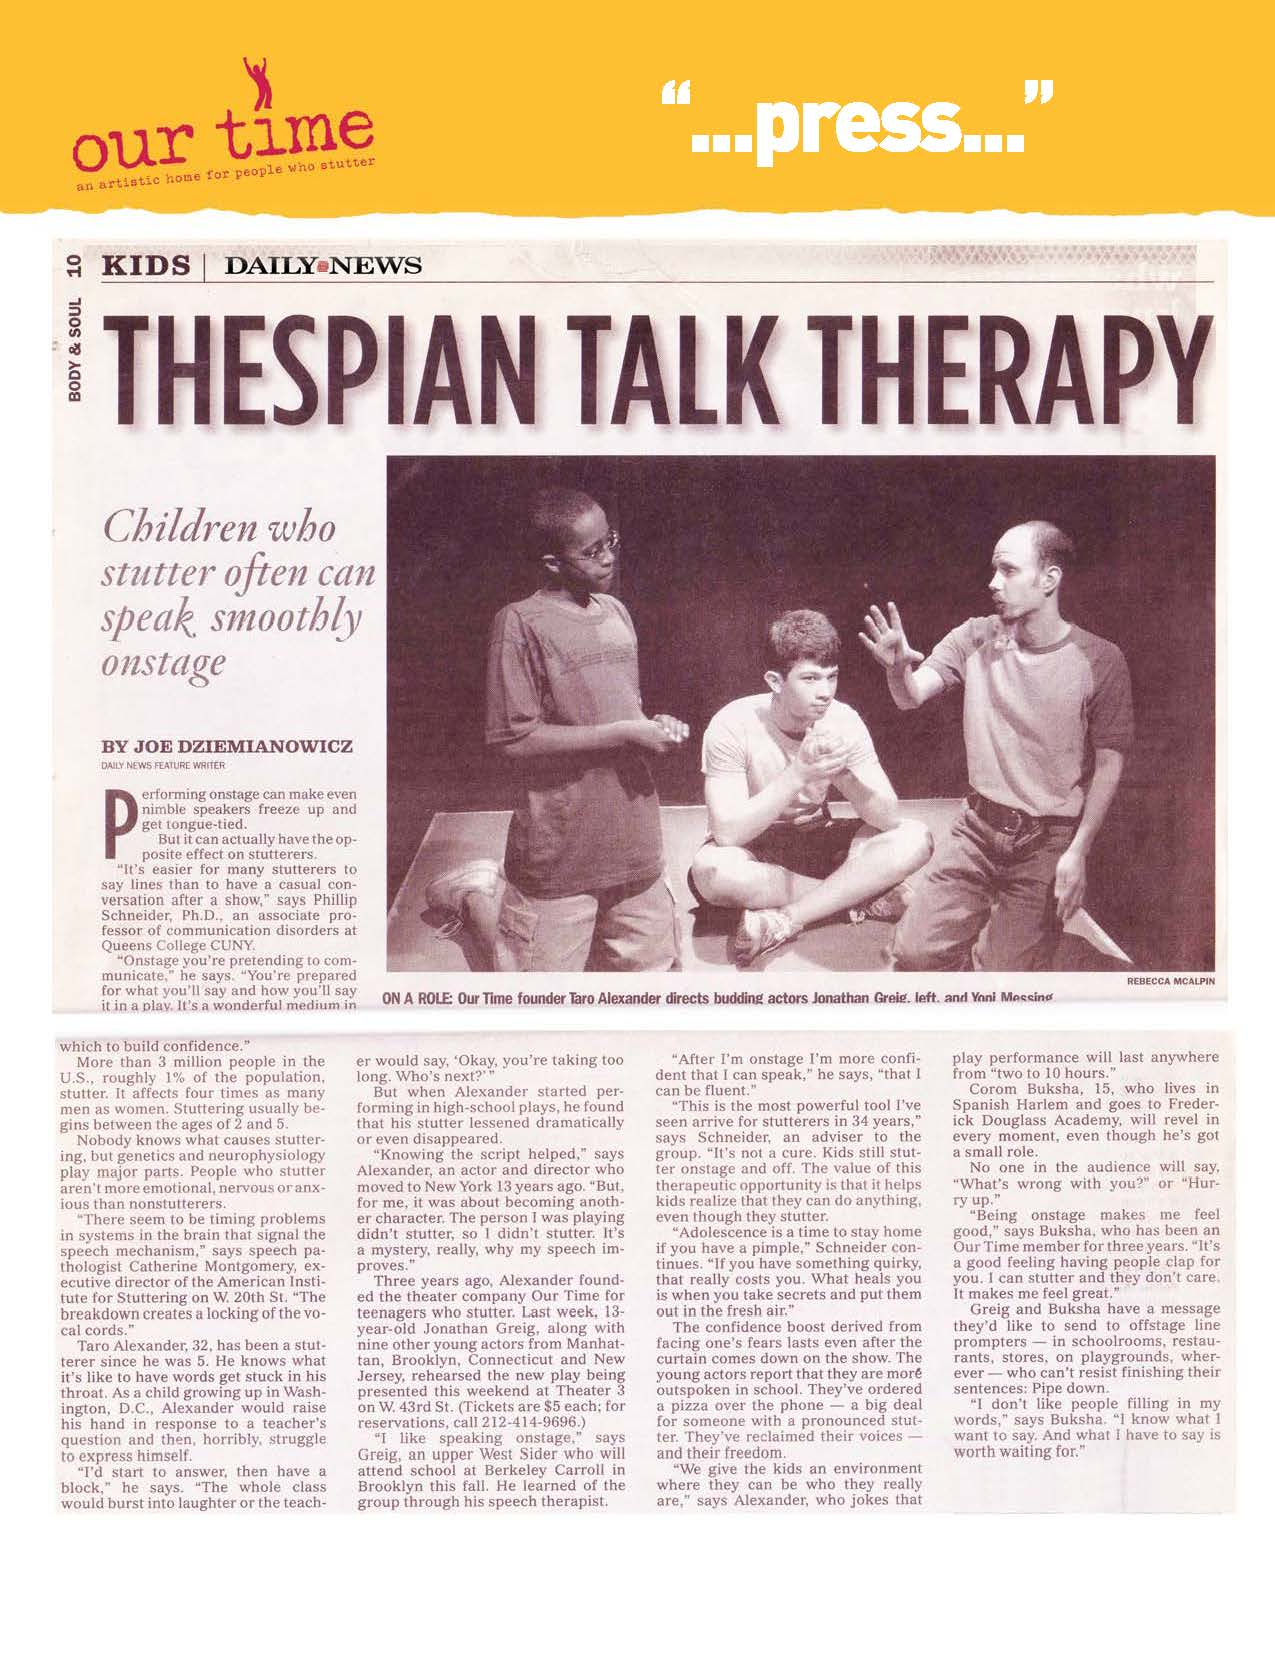 Thespian Talk Therapy